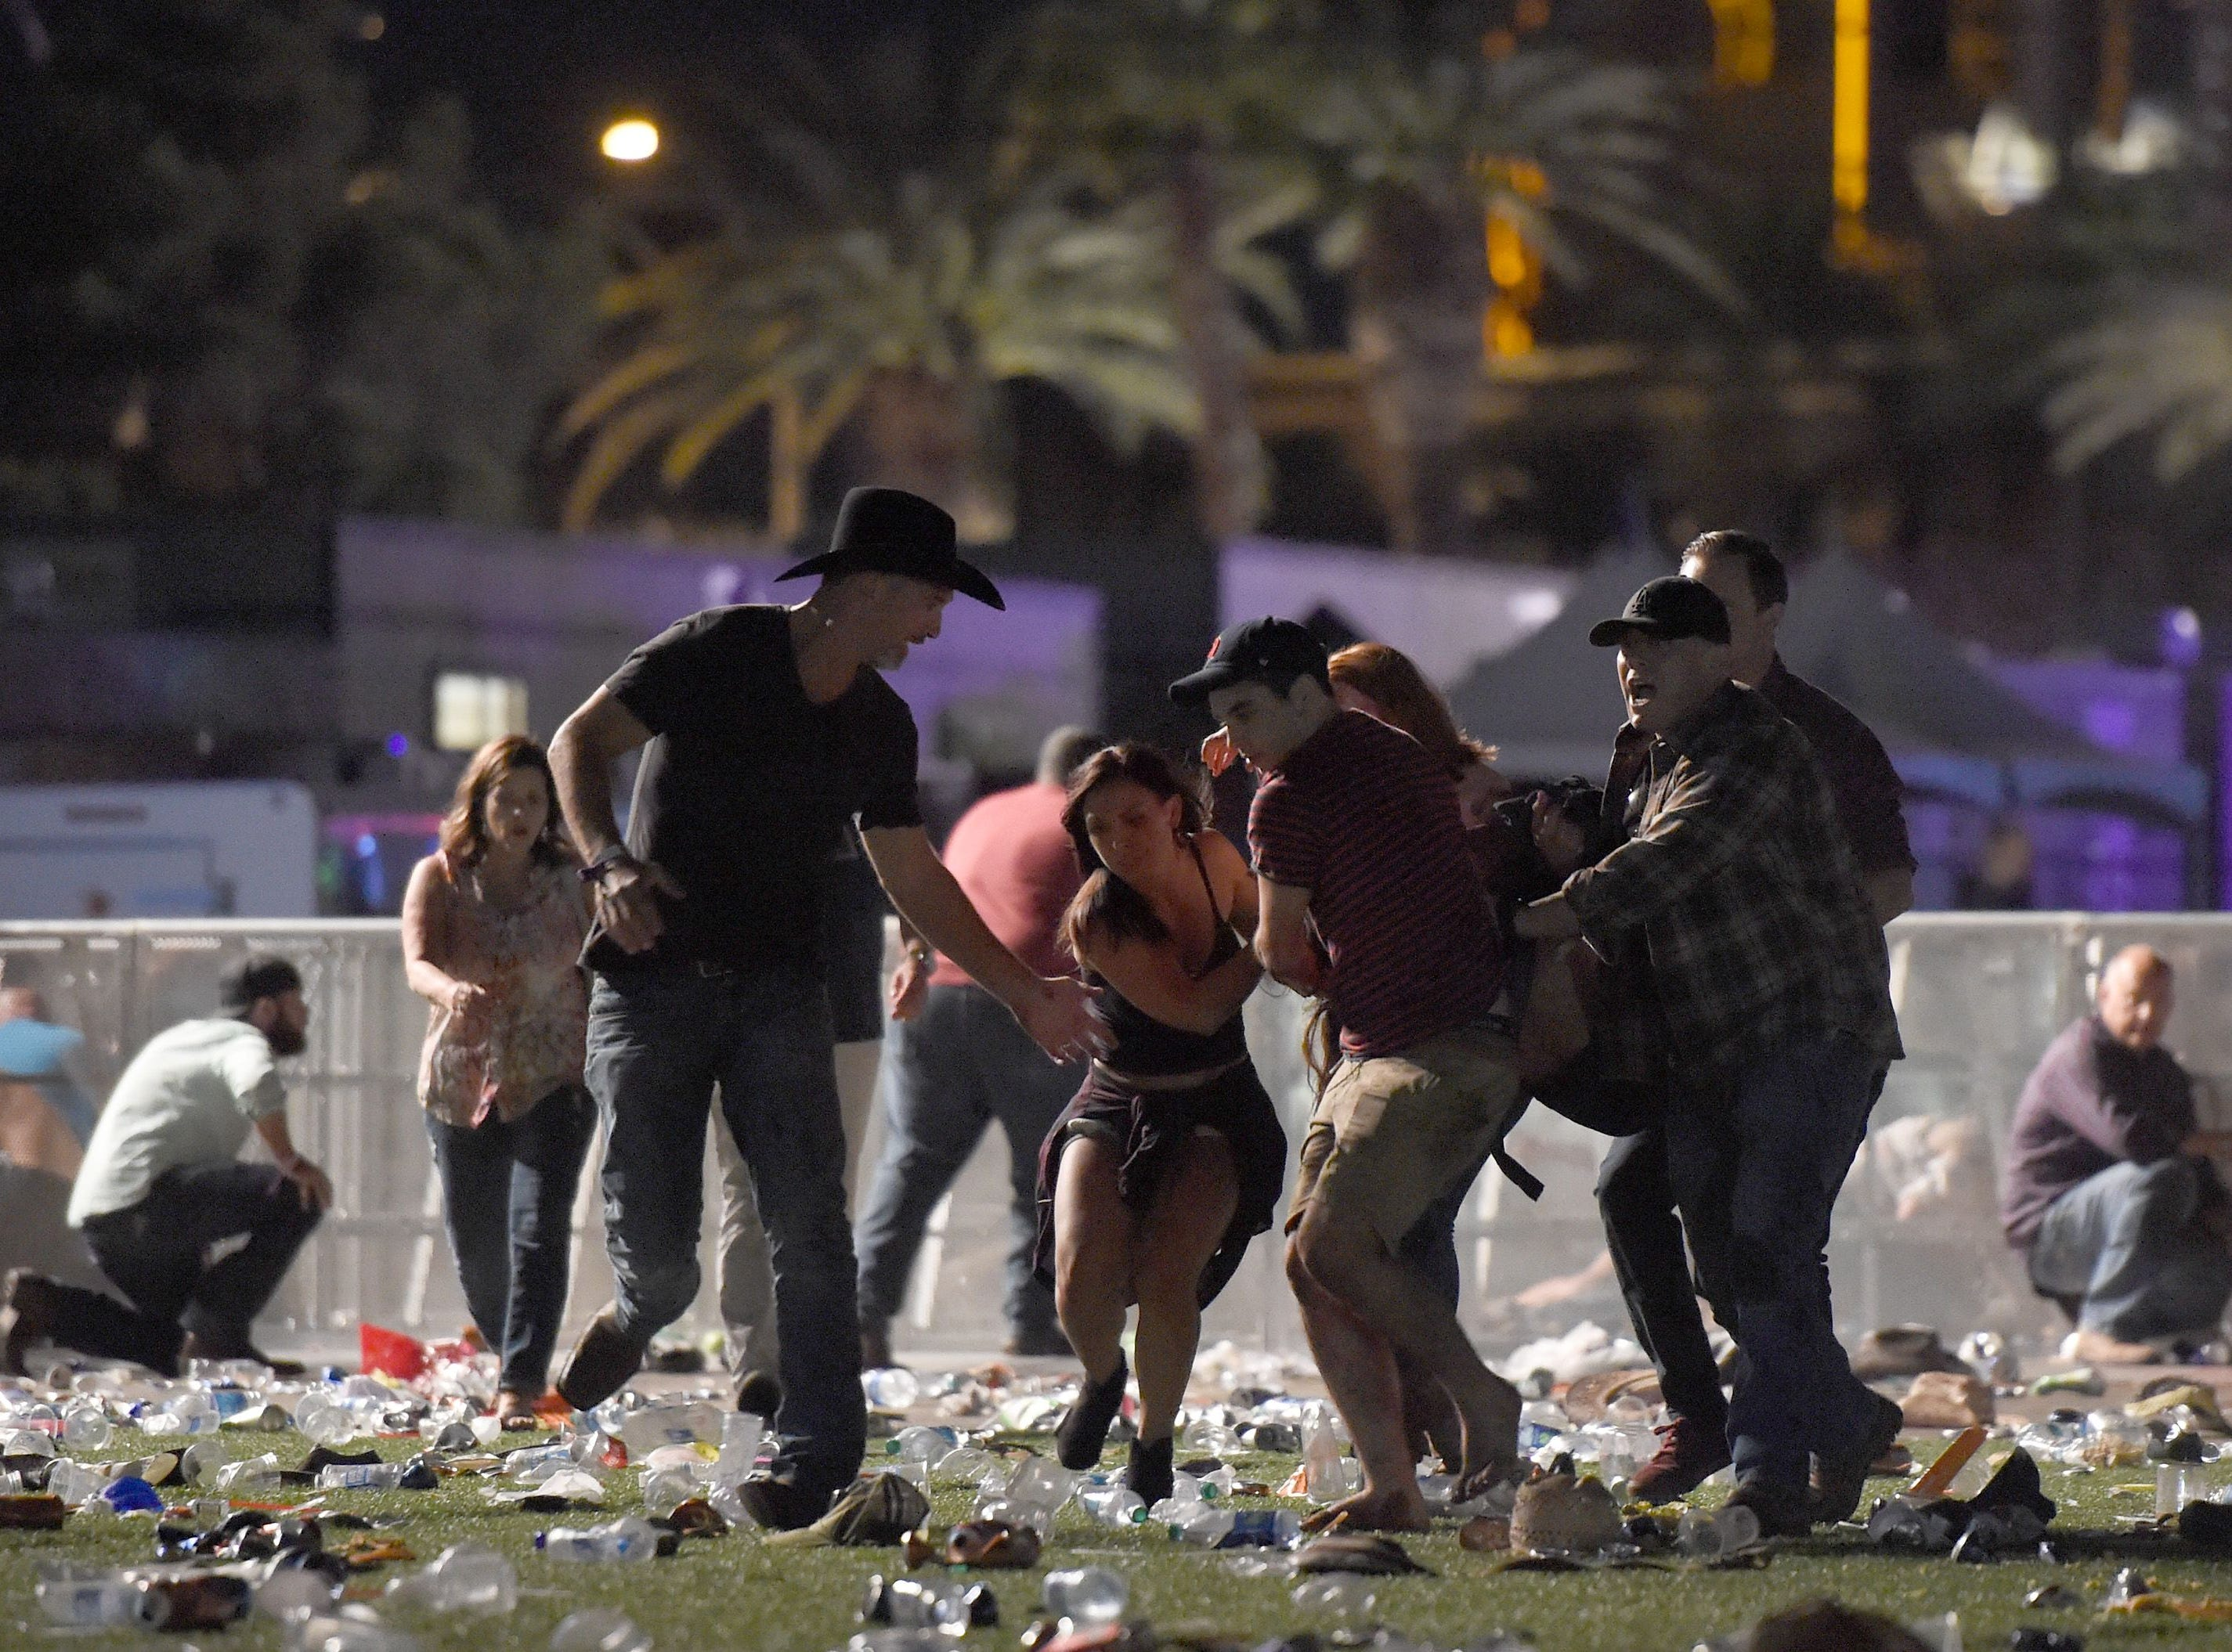 Las Vegas shooting   Las Vegas, Nevada   Oct. 1, 2017   59 dead   over 500 wounded